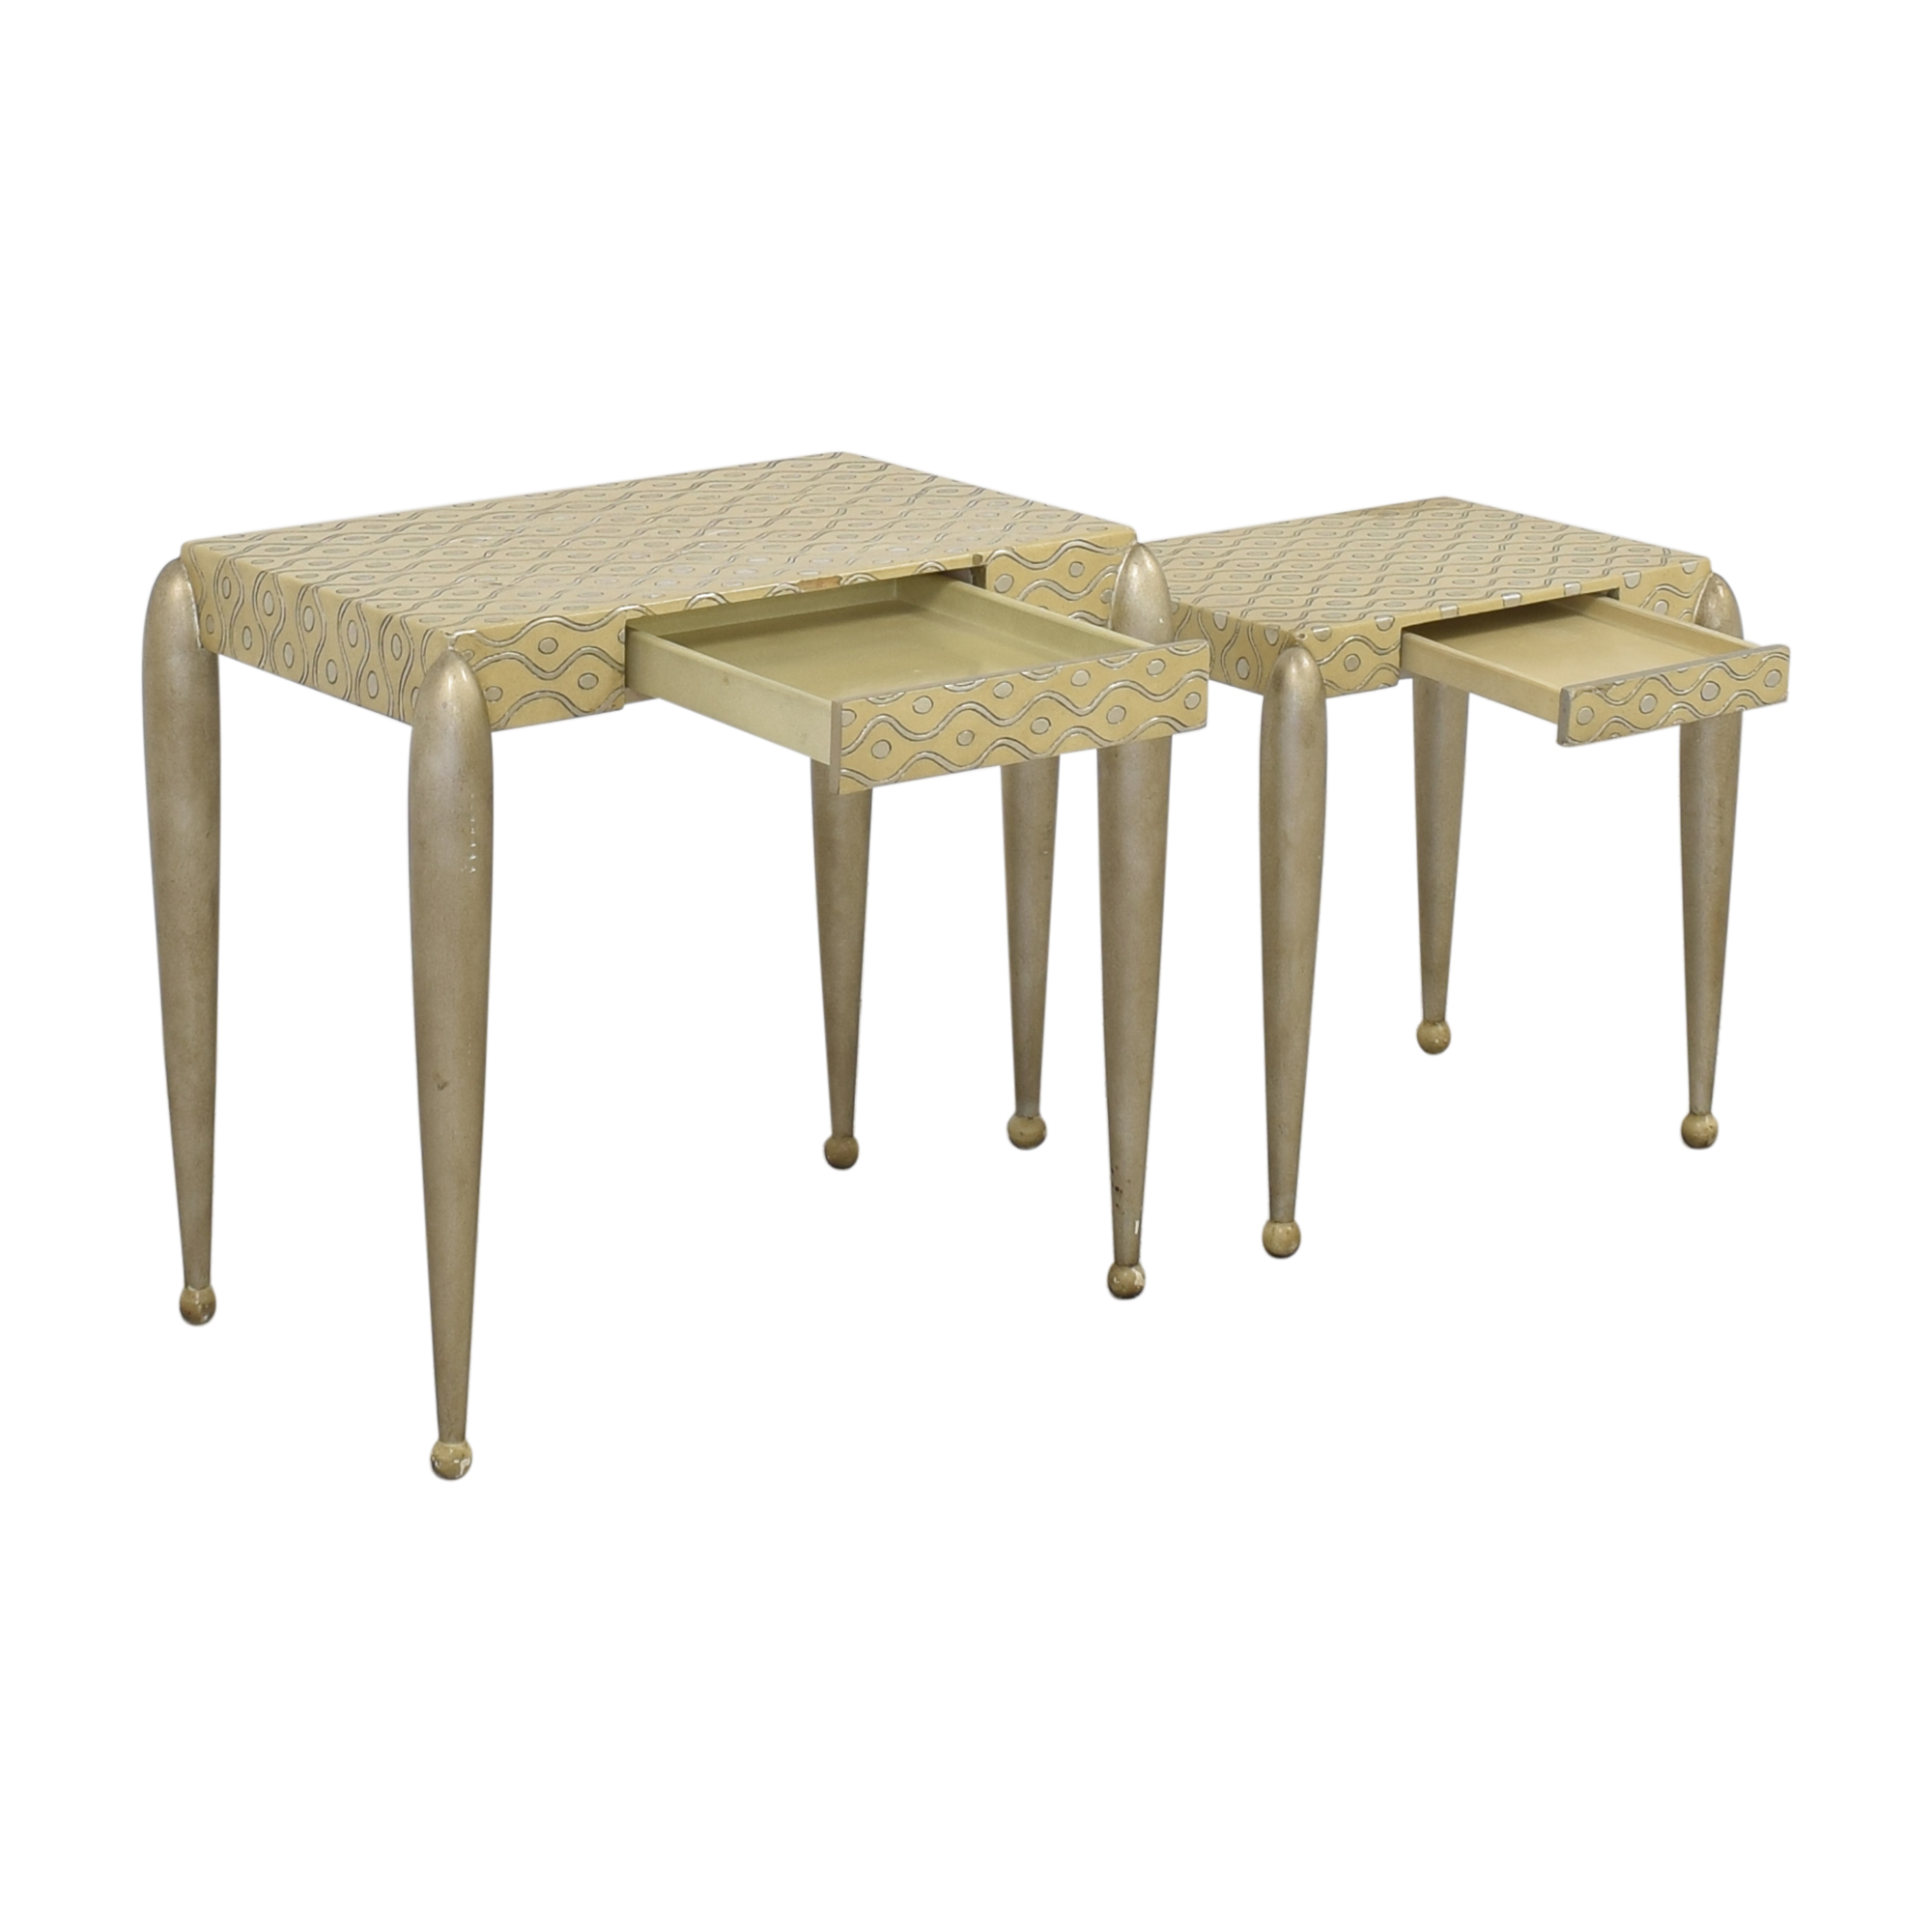 African Inspired Nesting Tables with Drawers / Accent Tables